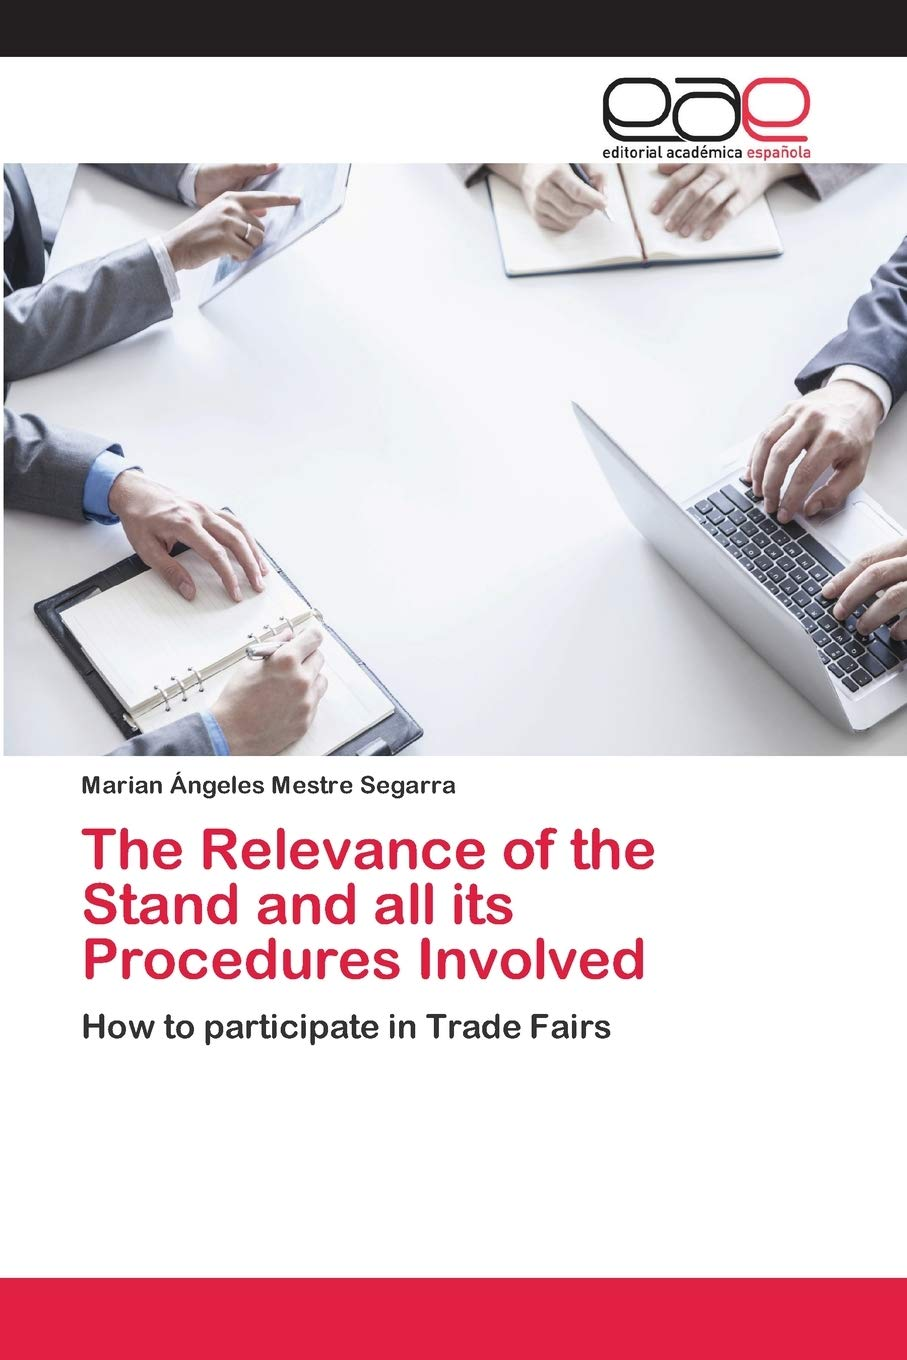 The Relevance of the Stand and all its Procedures Involved: How to participate in Trade Fairs